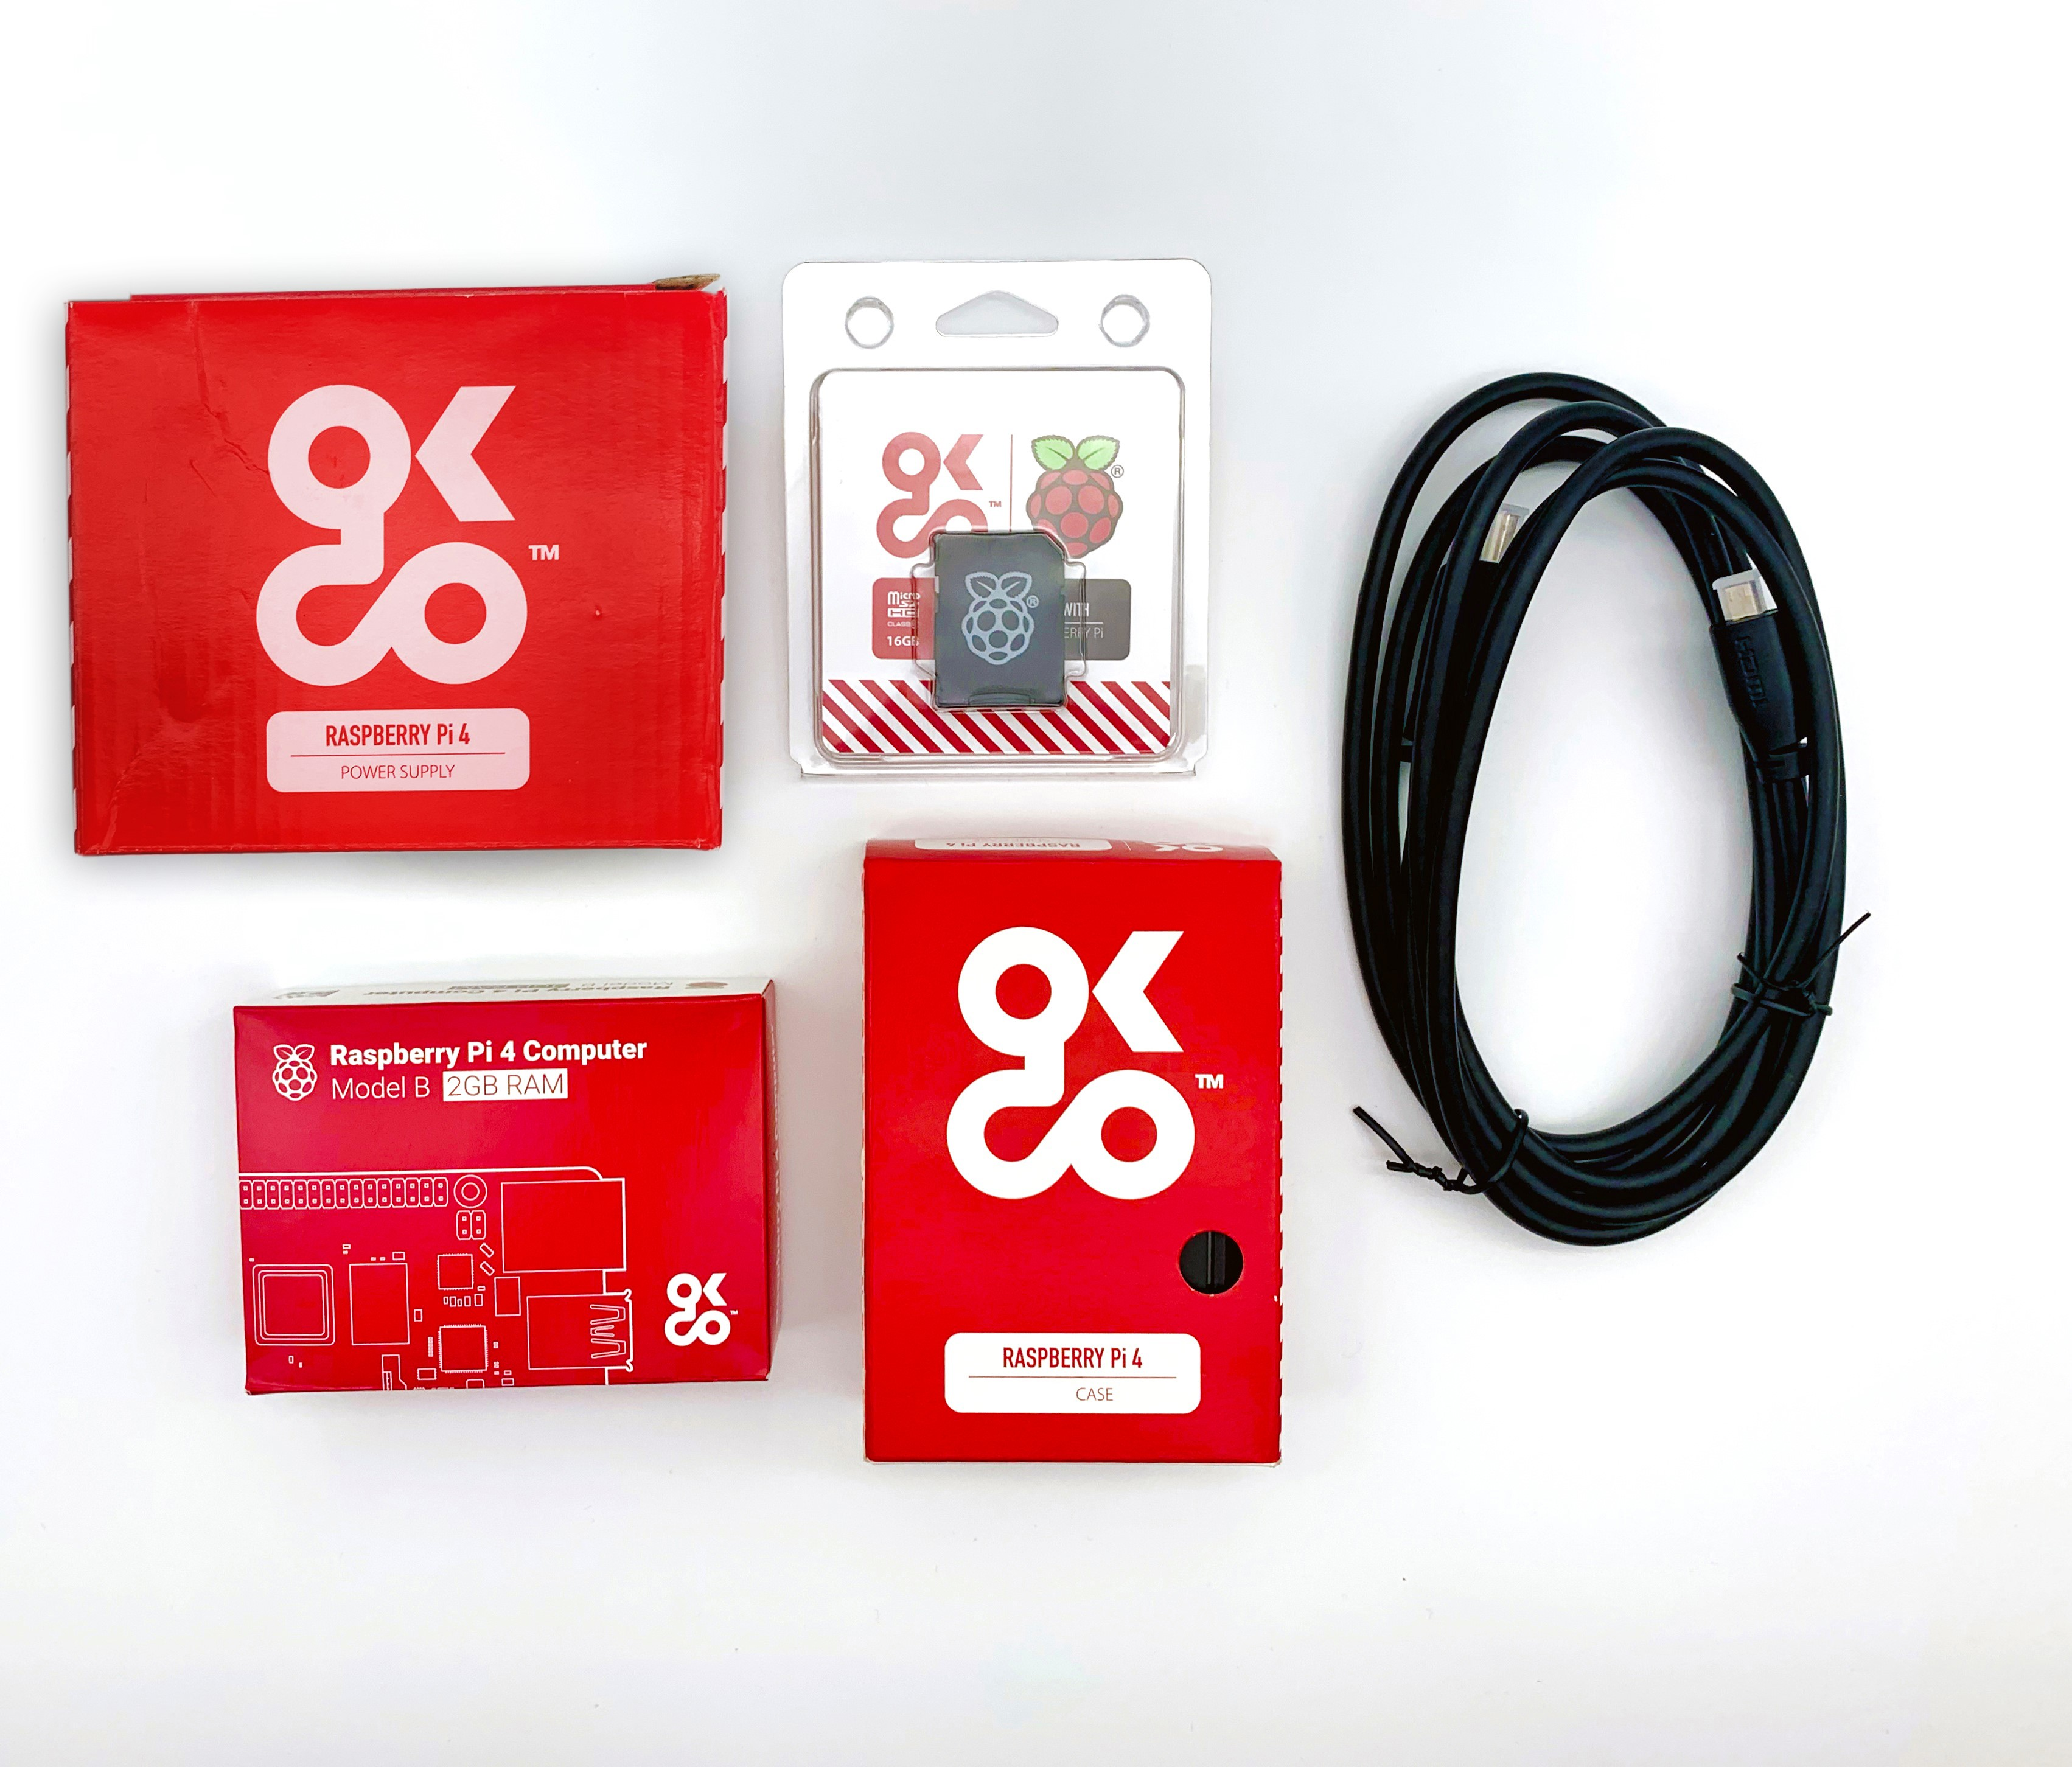 OKdo Raspberry Pi 4 2GB Essential Starter Kit with Universal Power Supply